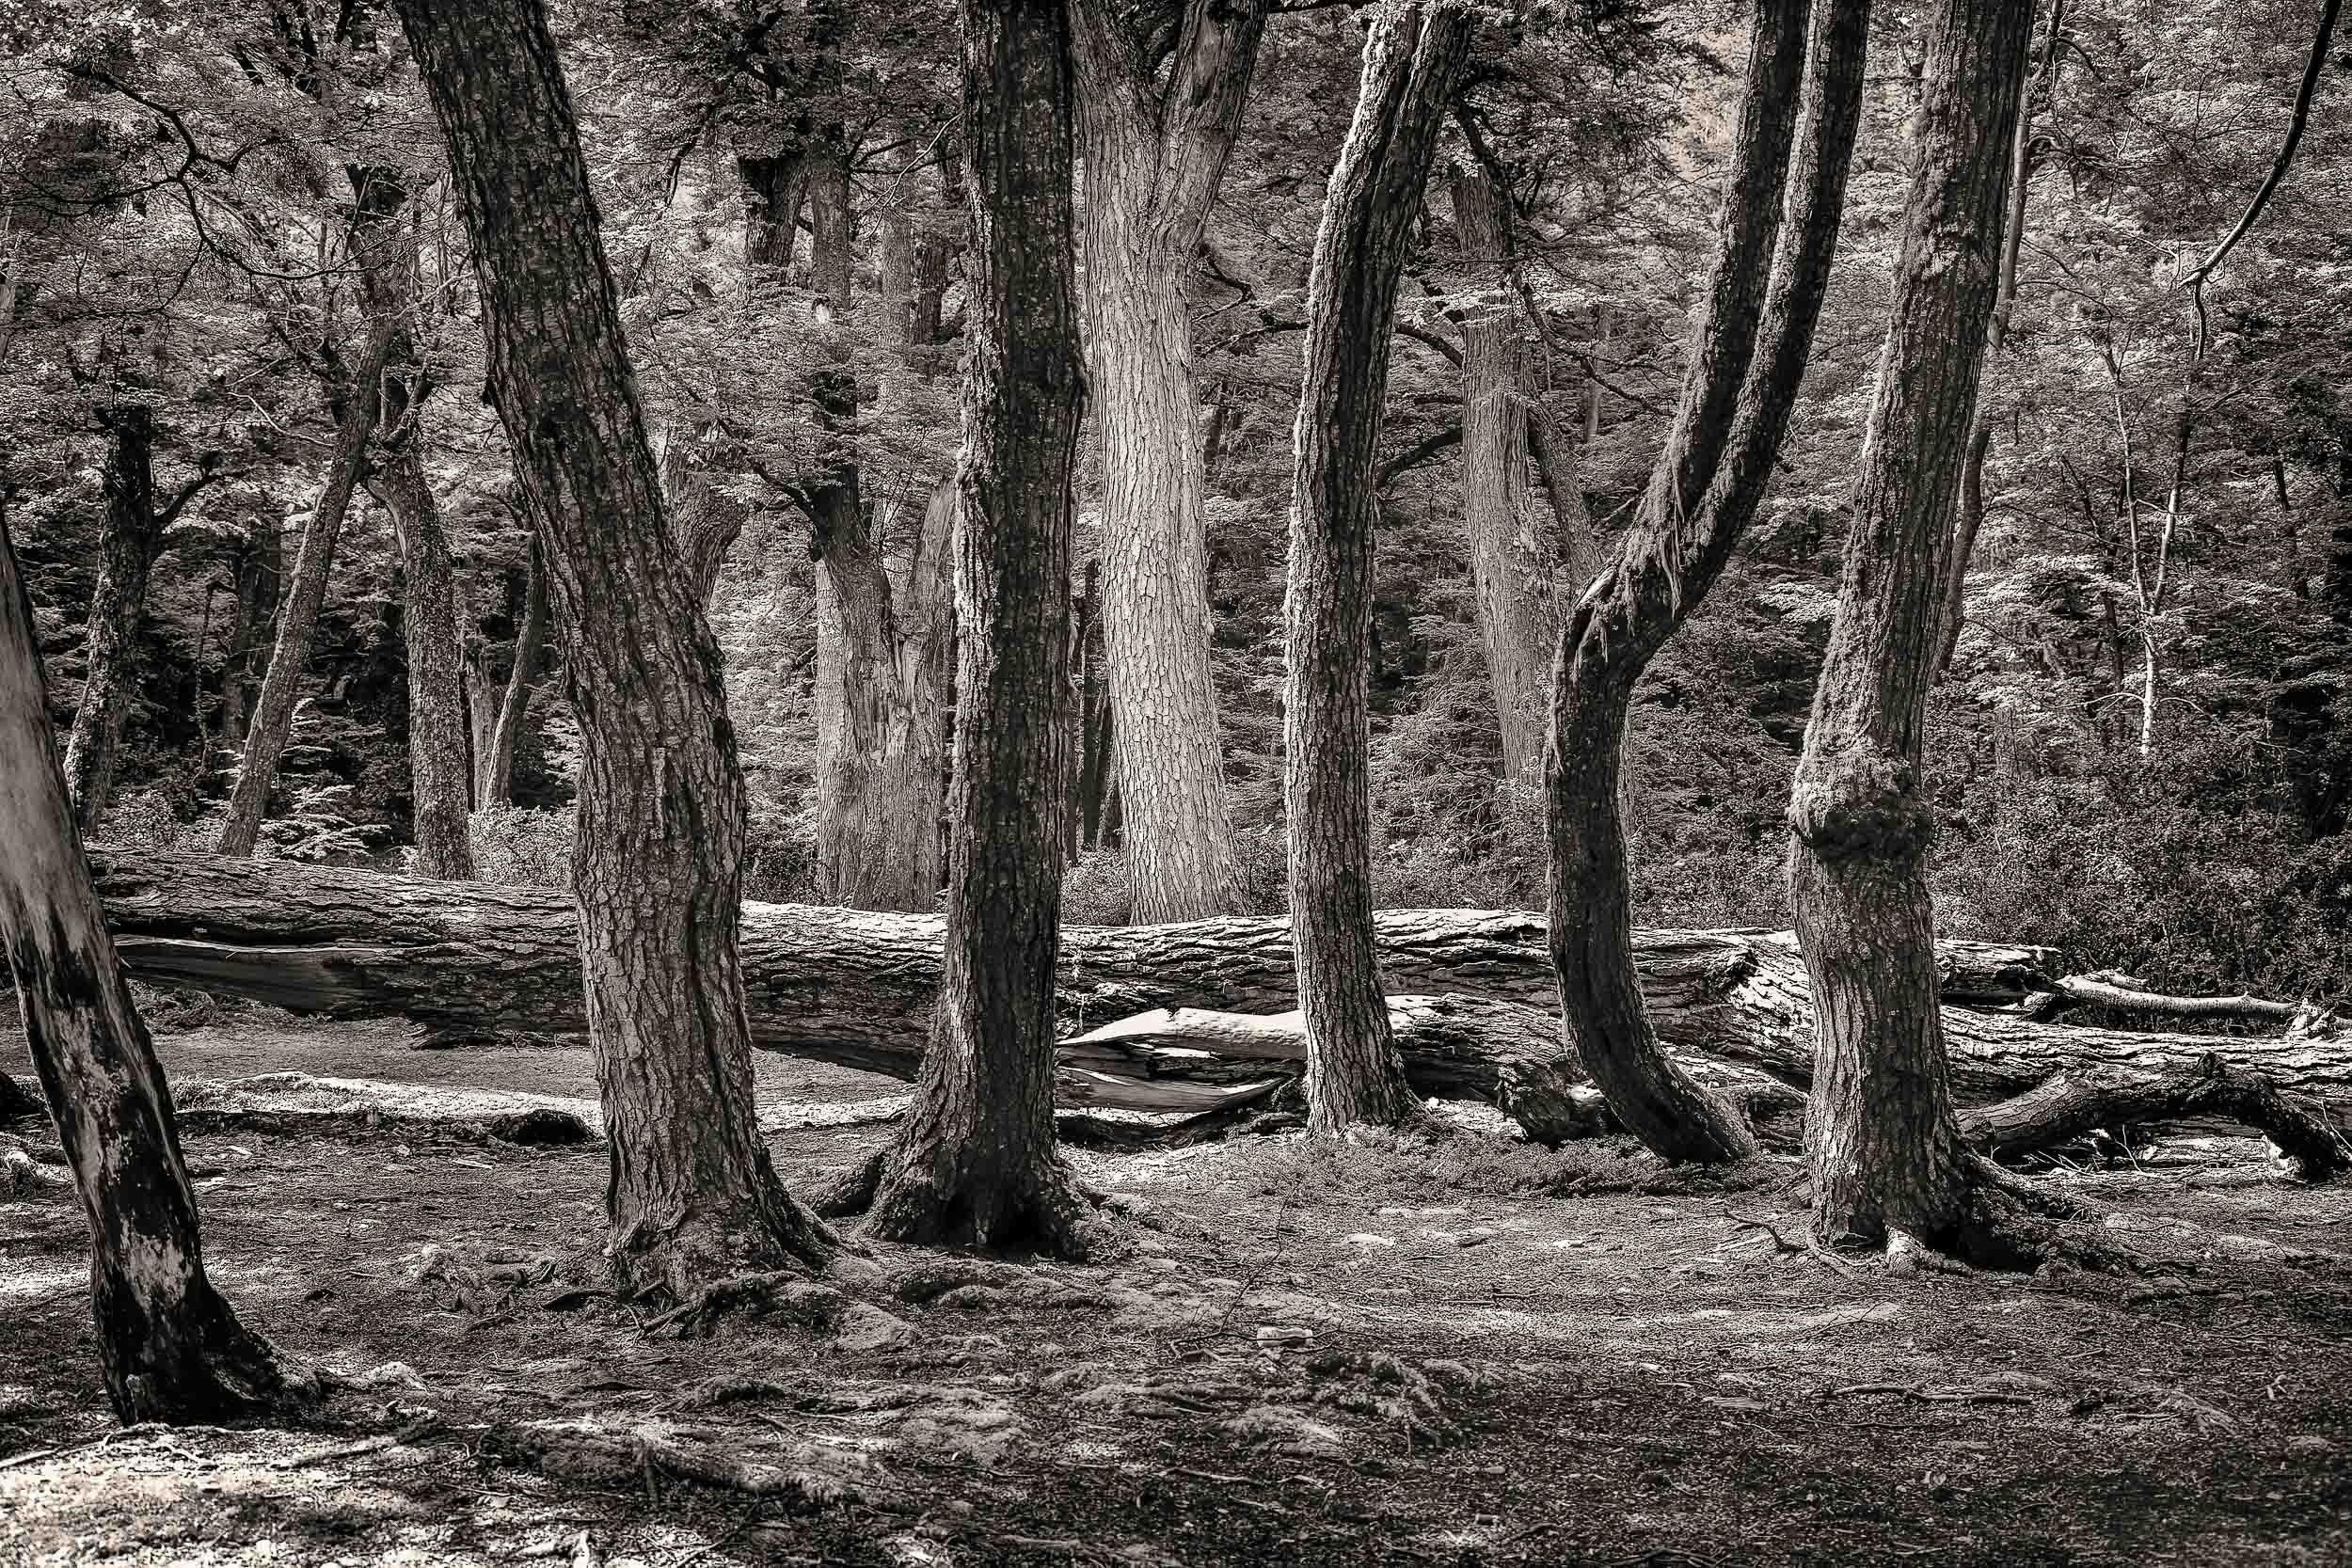 A    stand of trees    in a forested area on the shores of the sea in    Tierra del Fuego National Park, Argentina   .